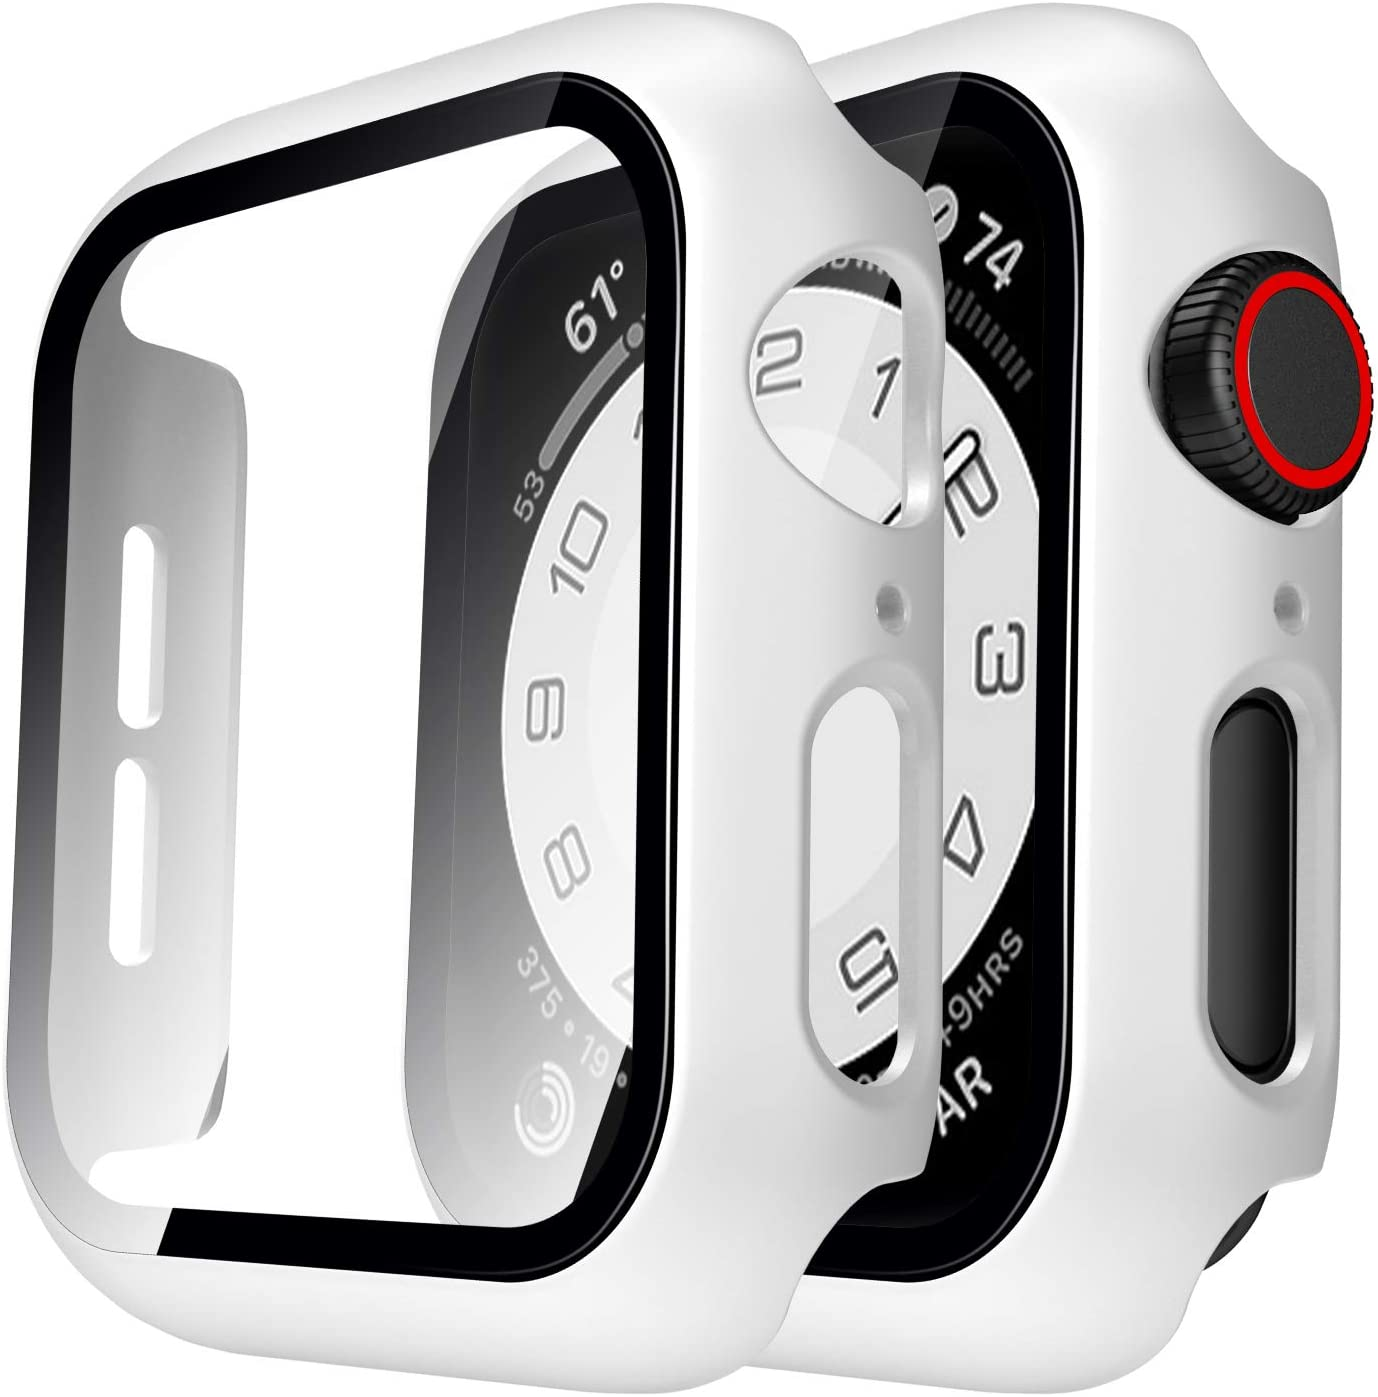 TAURI 2 Pack Hard Case Compatible for Apple Watch SE Series 6 5 4 44mm Built in 9H Tempered Glass Screen Protector Slim Bumper Touch Sensitive Full Protective Cover Compatible for iWatch 44mm - White